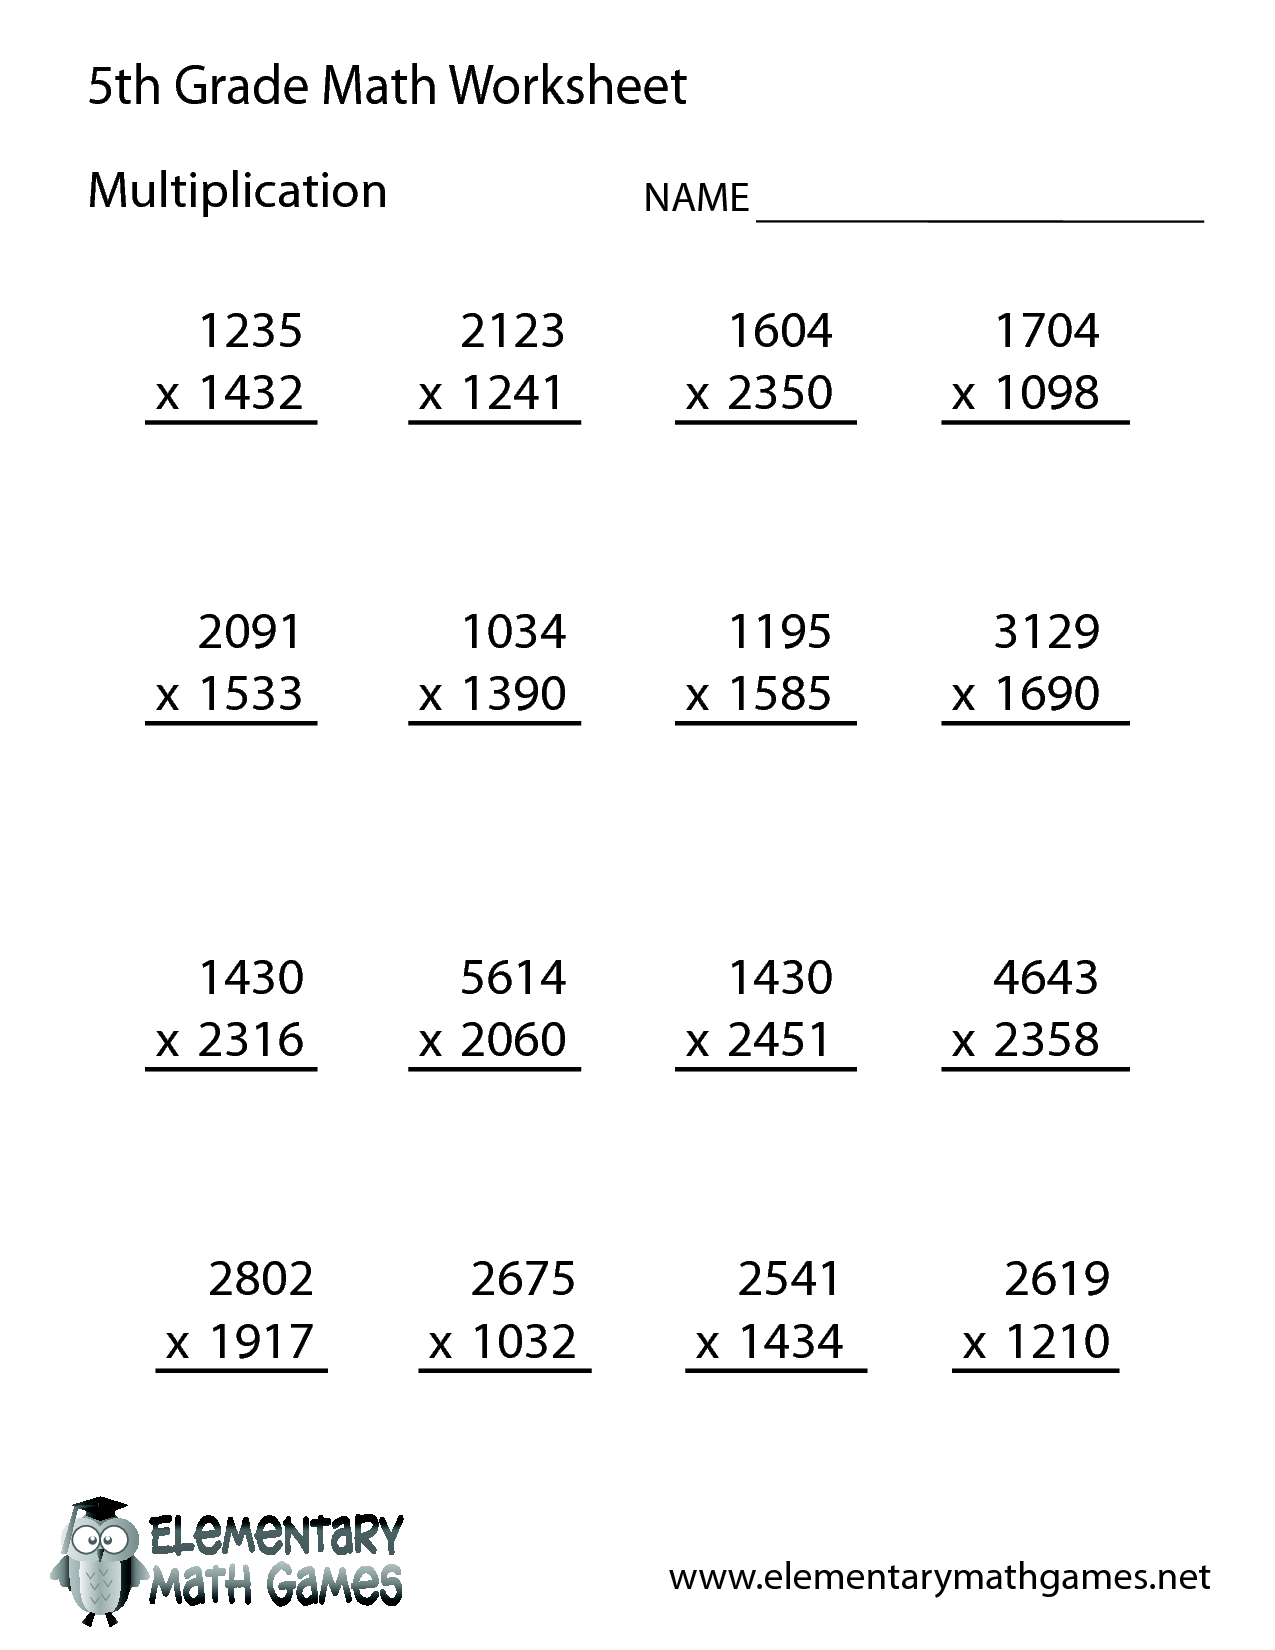 6 7 8 and 9 times tables multiplication math worksheets third – Math Worksheets for Grade 5 Multiplication